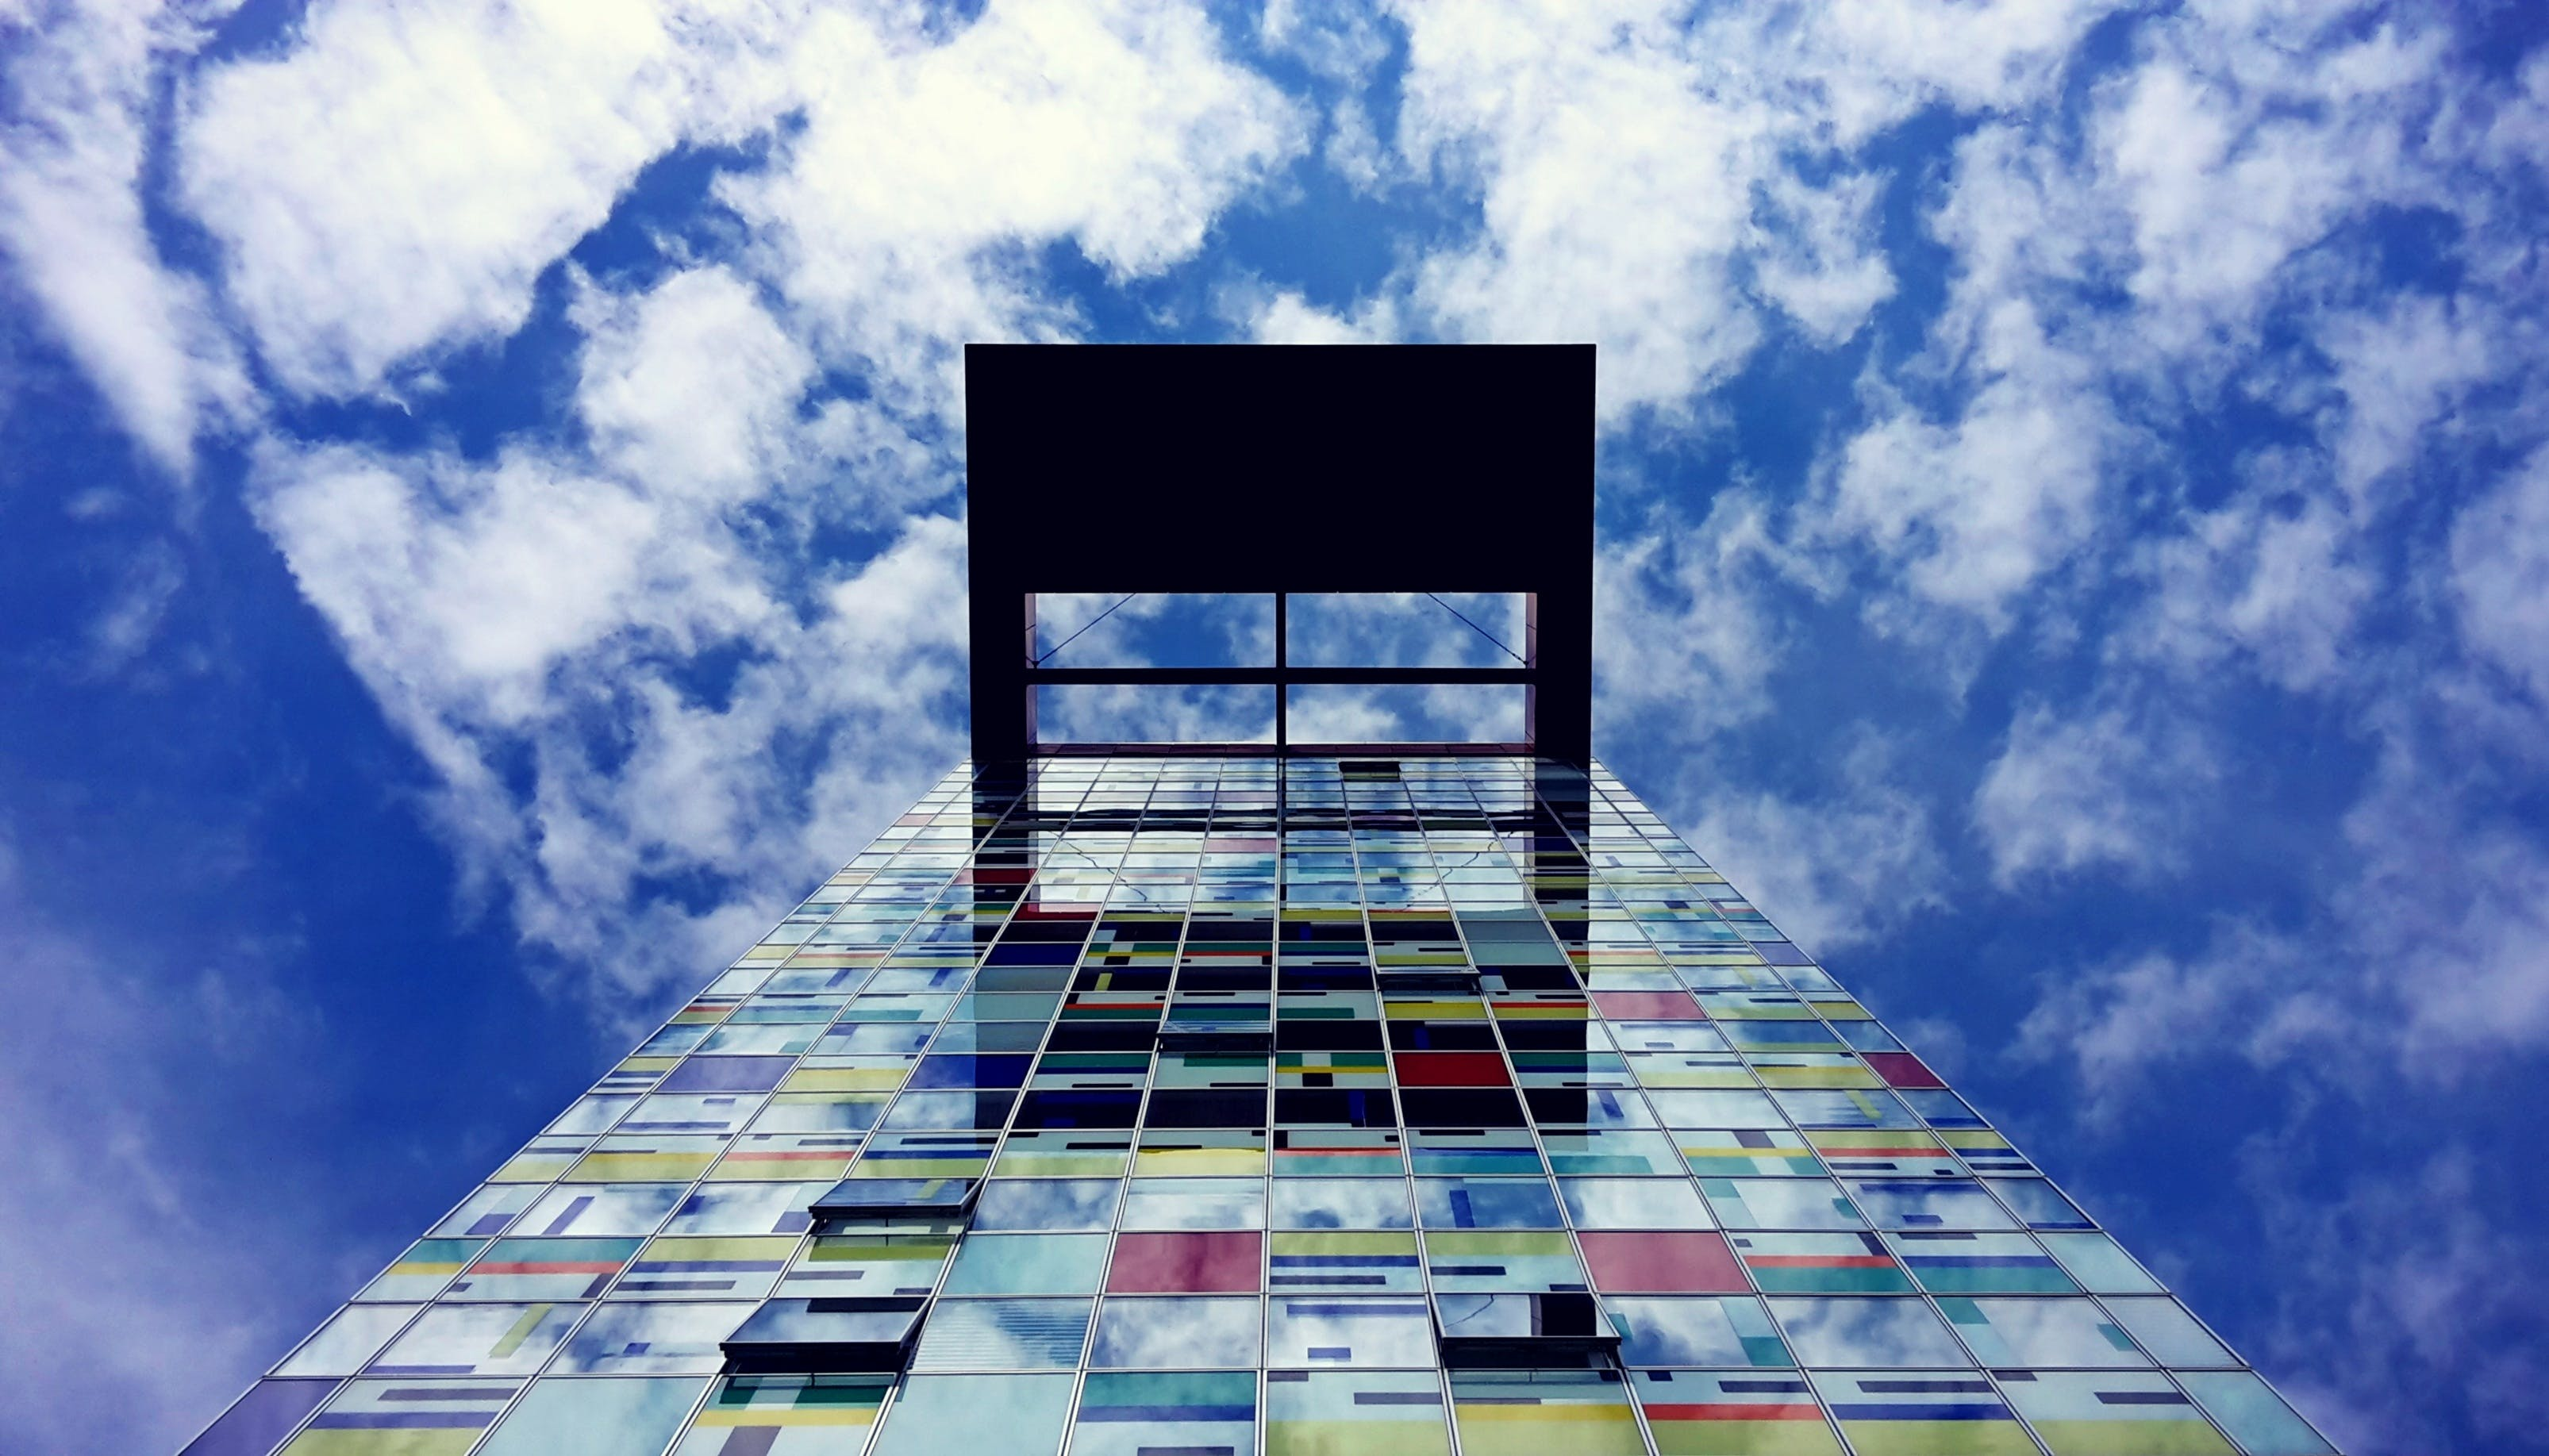 Low Angle Photography of Glass Building Under White Cloud and Blue Sky during Daytime